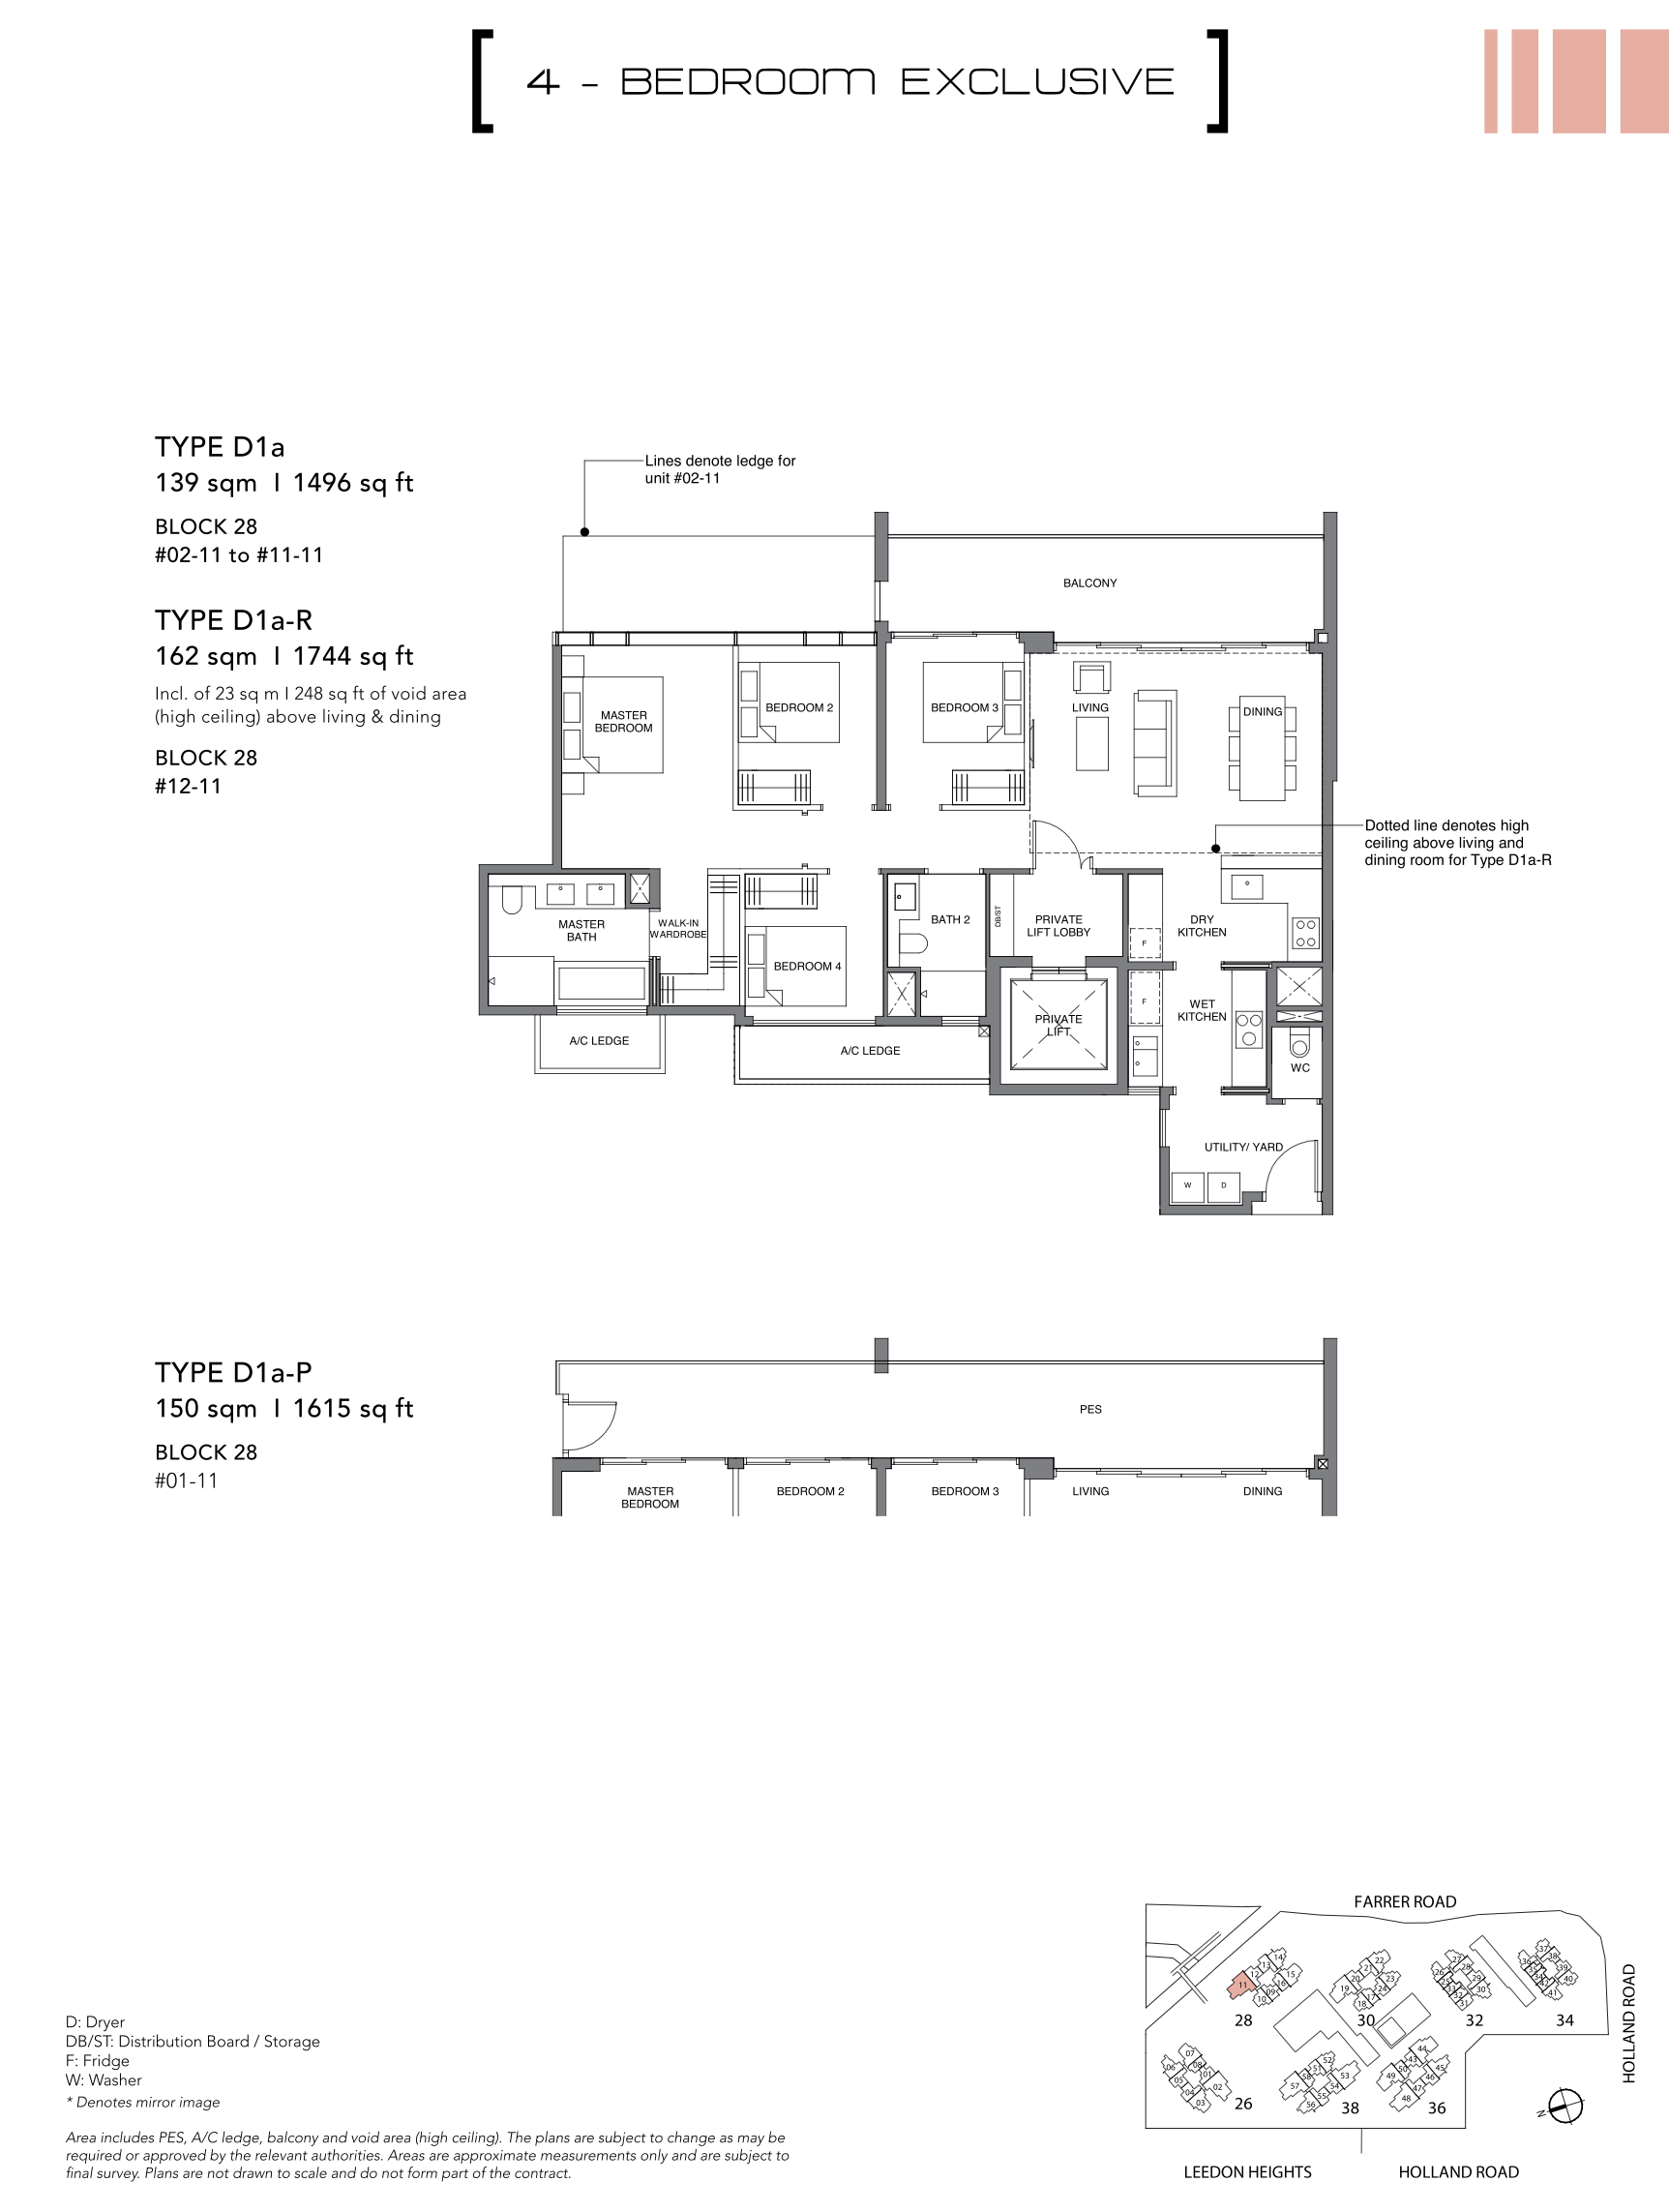 绿墩雅苑公寓户型图 Leedon Green floor plan 4 bedroom exclusive D1a and D1a-p